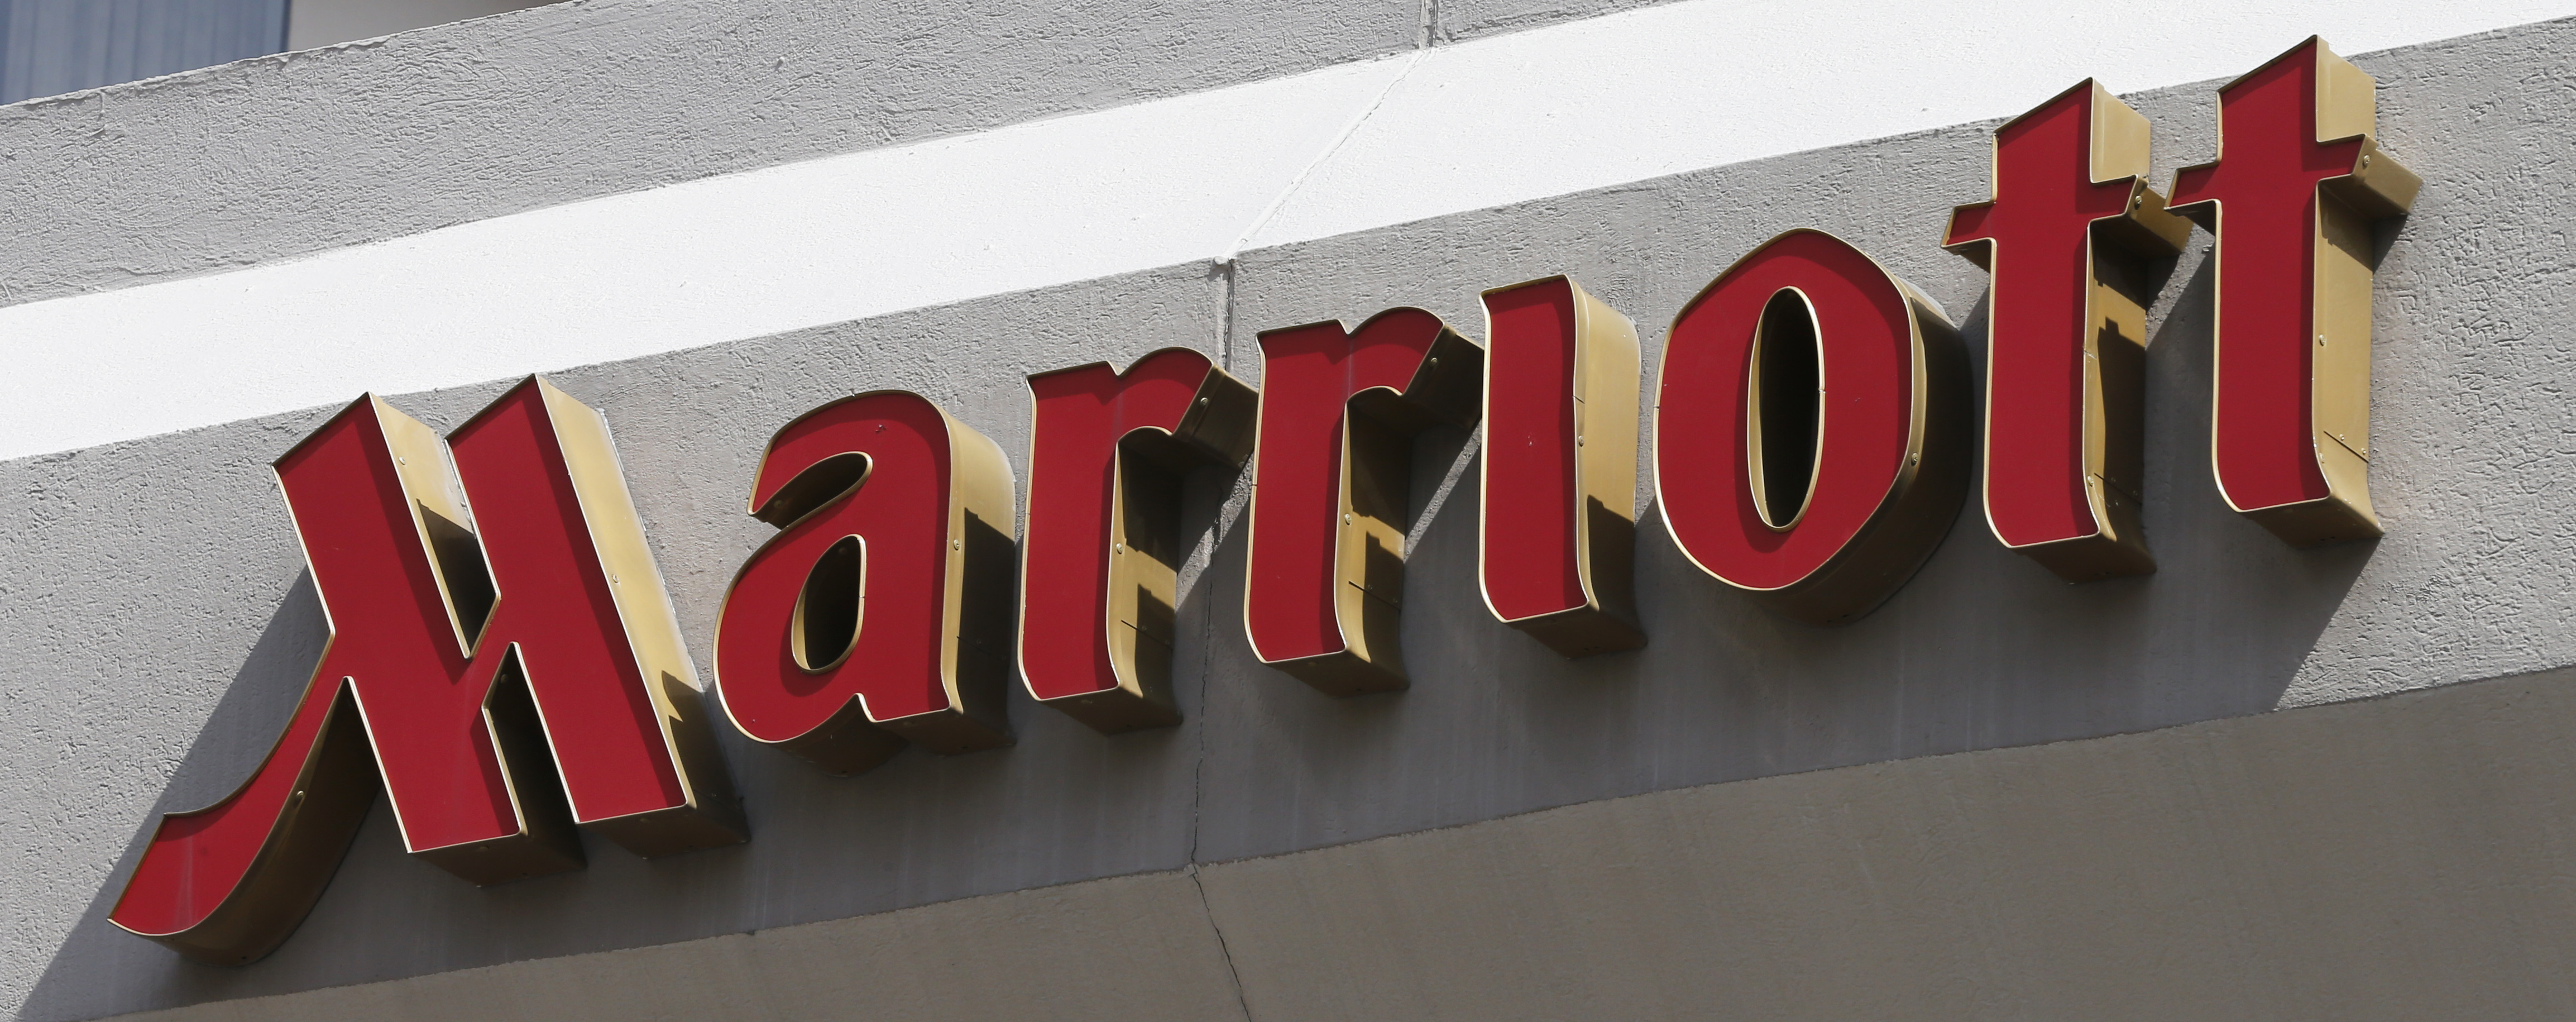 Hogan: Side deal to keep Marriott in Md. is 'necessary'